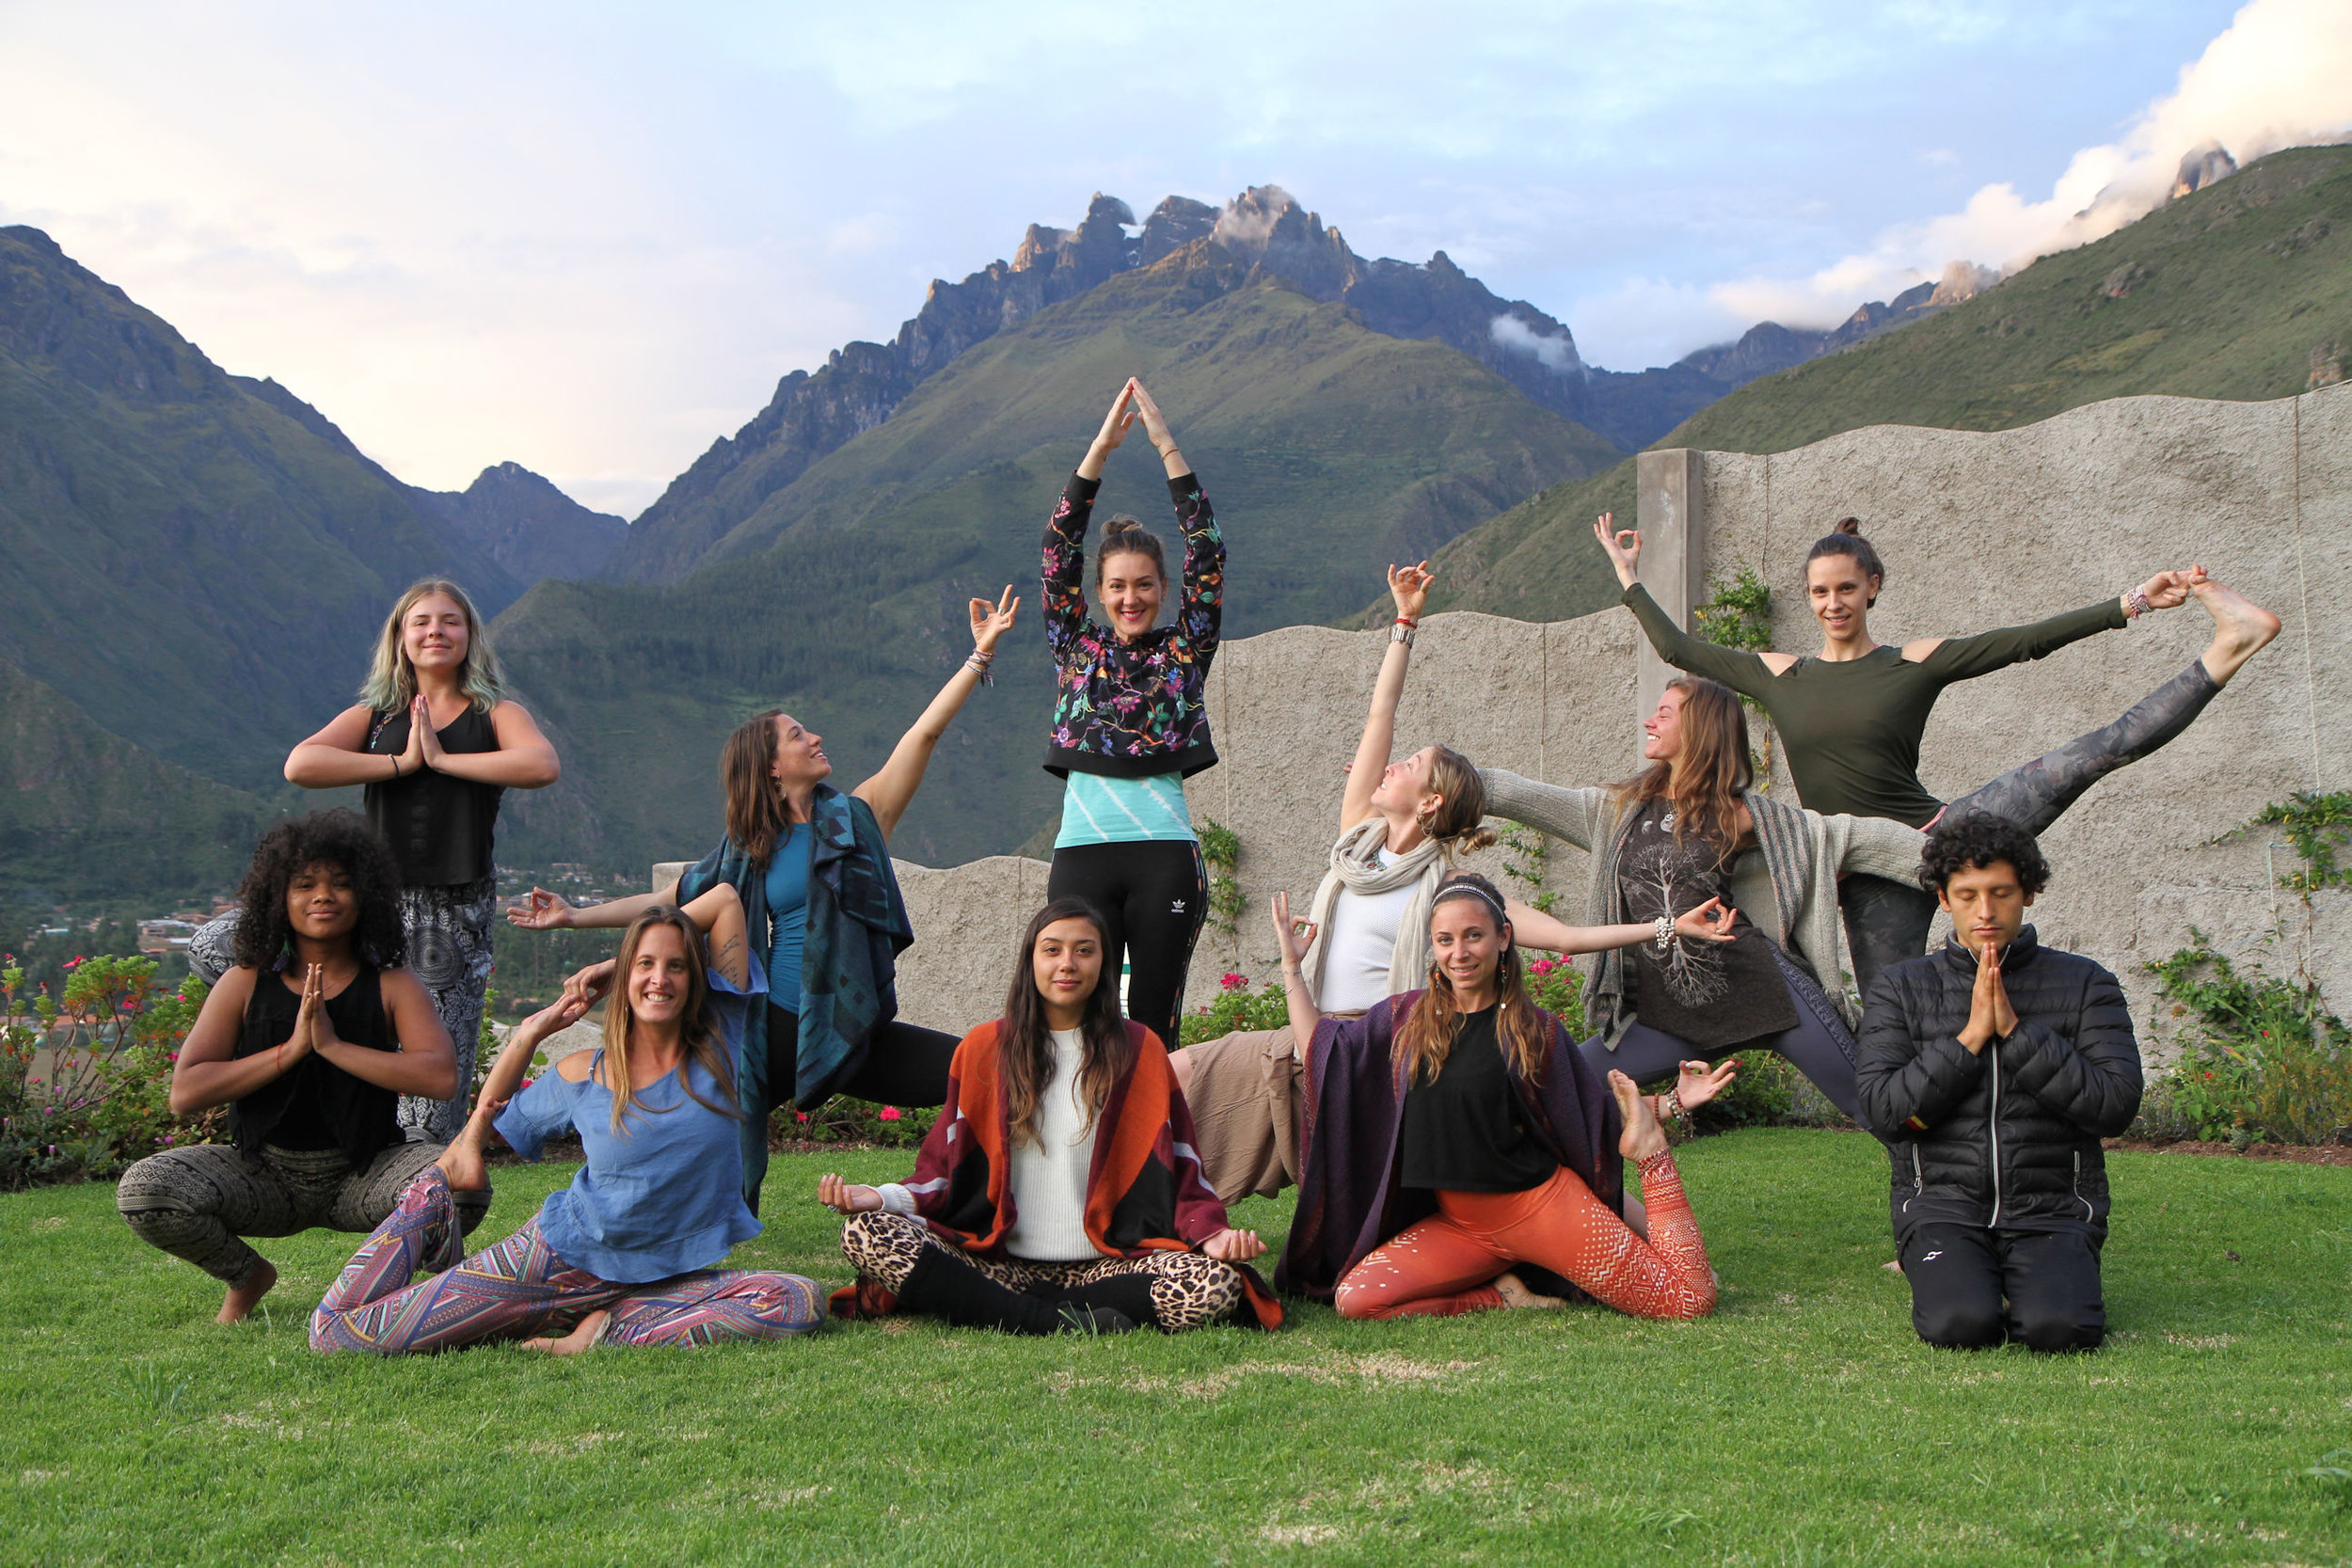 kali-durga-yoga-yin-yoga-teacher-training-peru